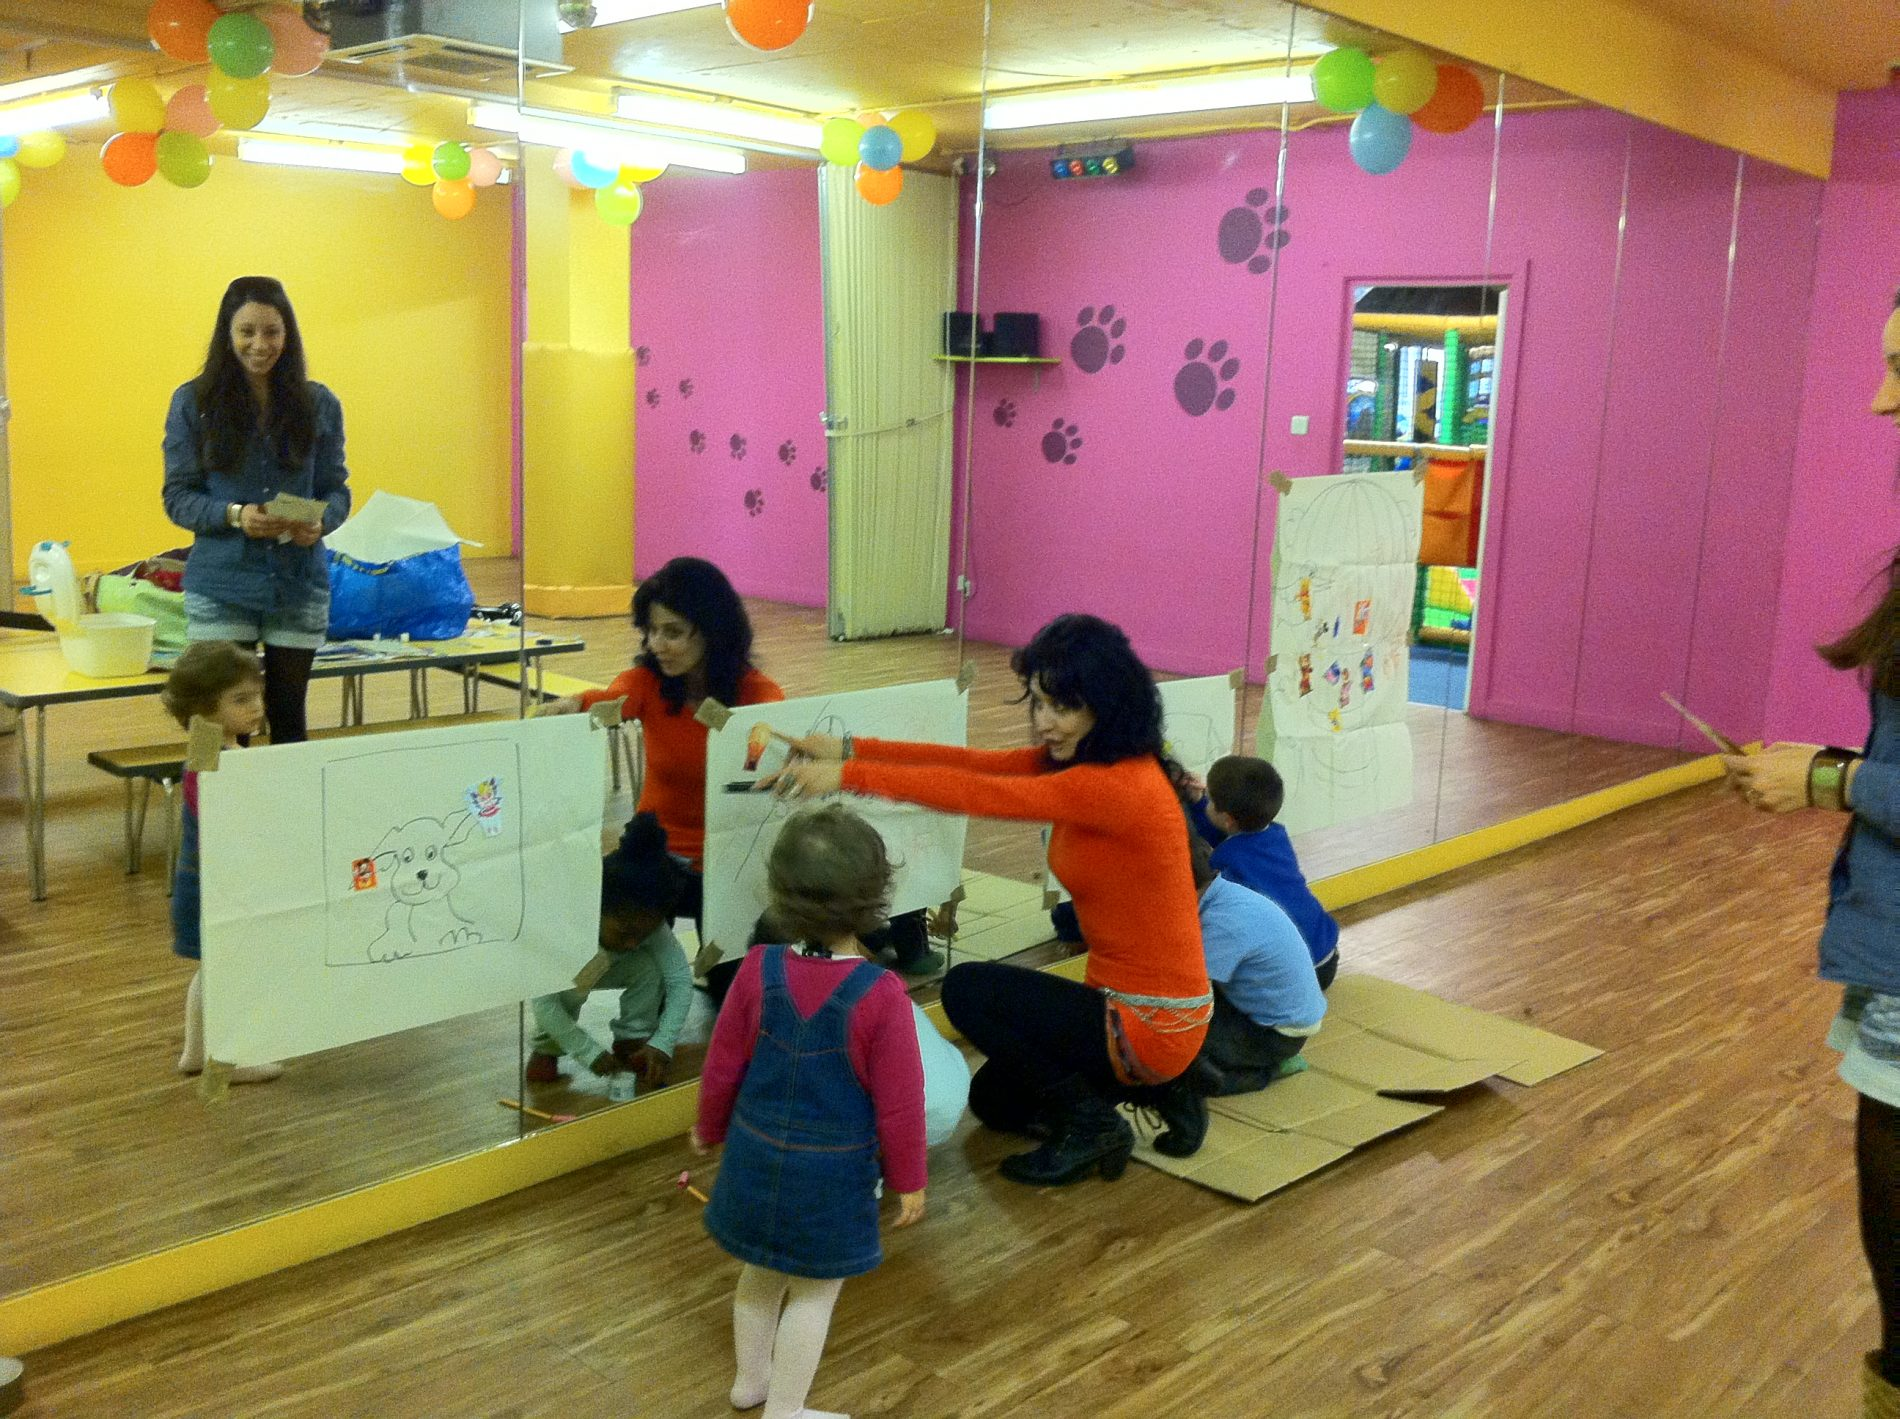 London Mums' playgroup with a twist